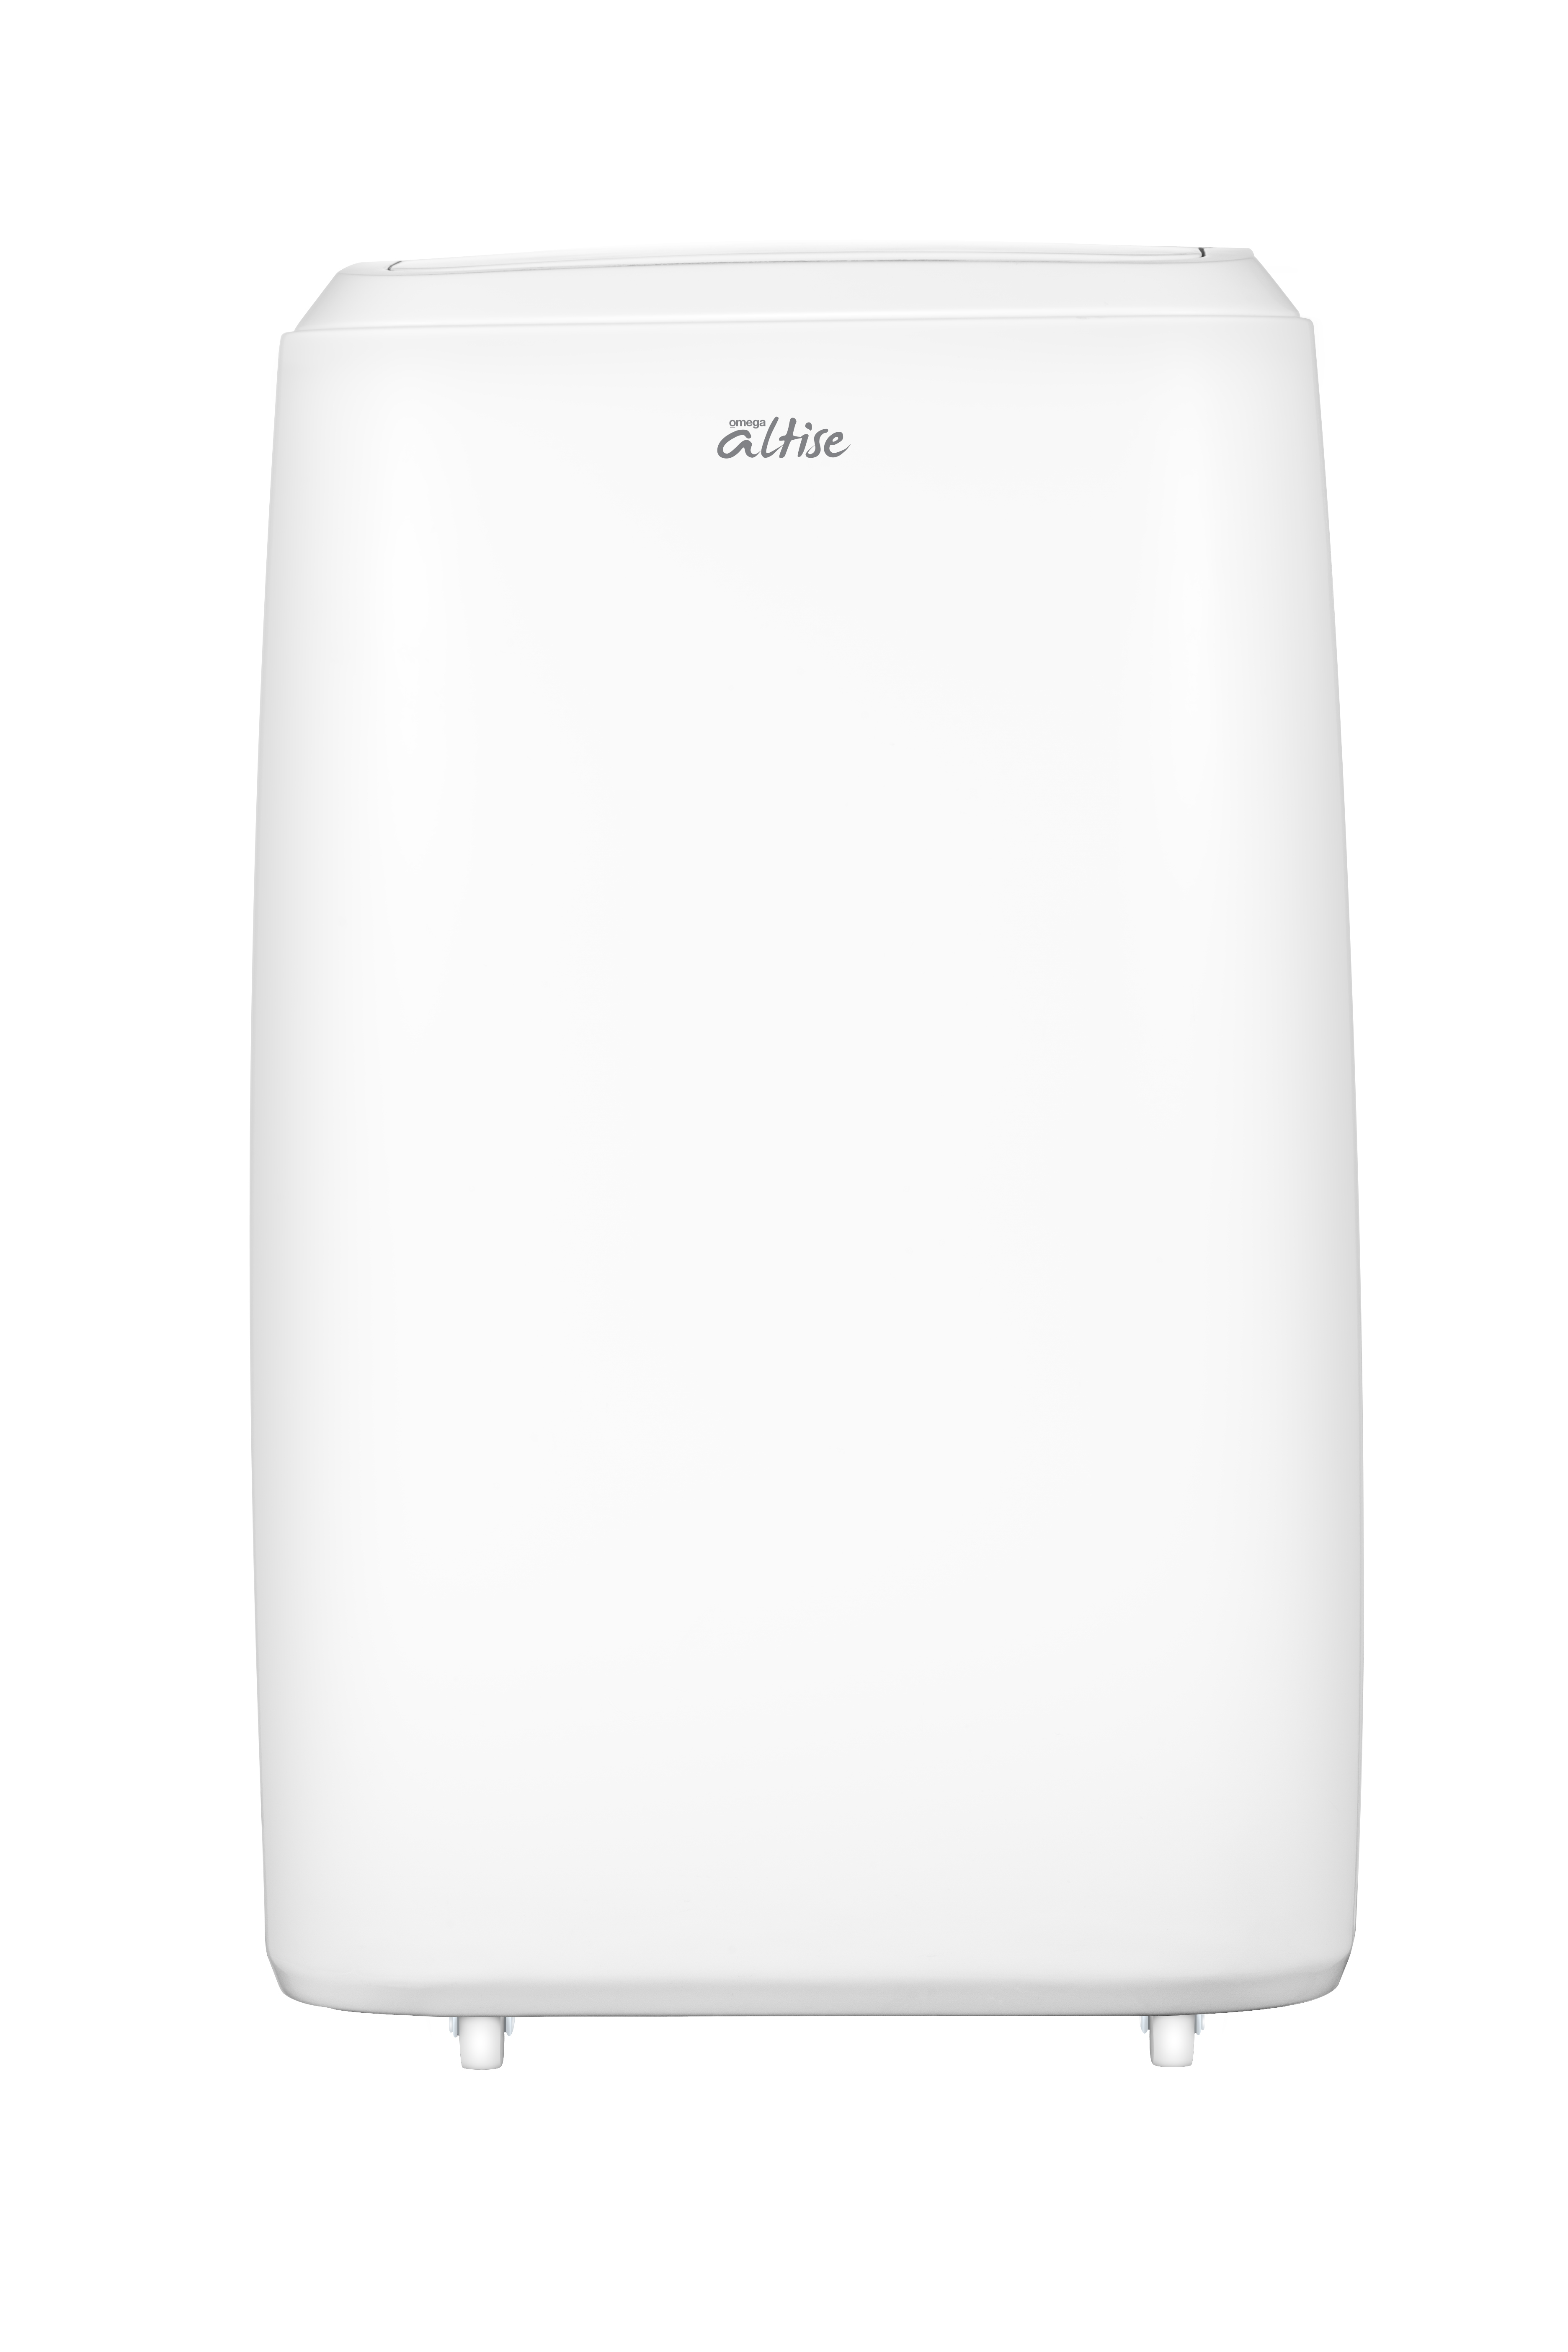 Omega Altise Product 5.2kW Slimline Portable Air-Conditioner(OAPC187)